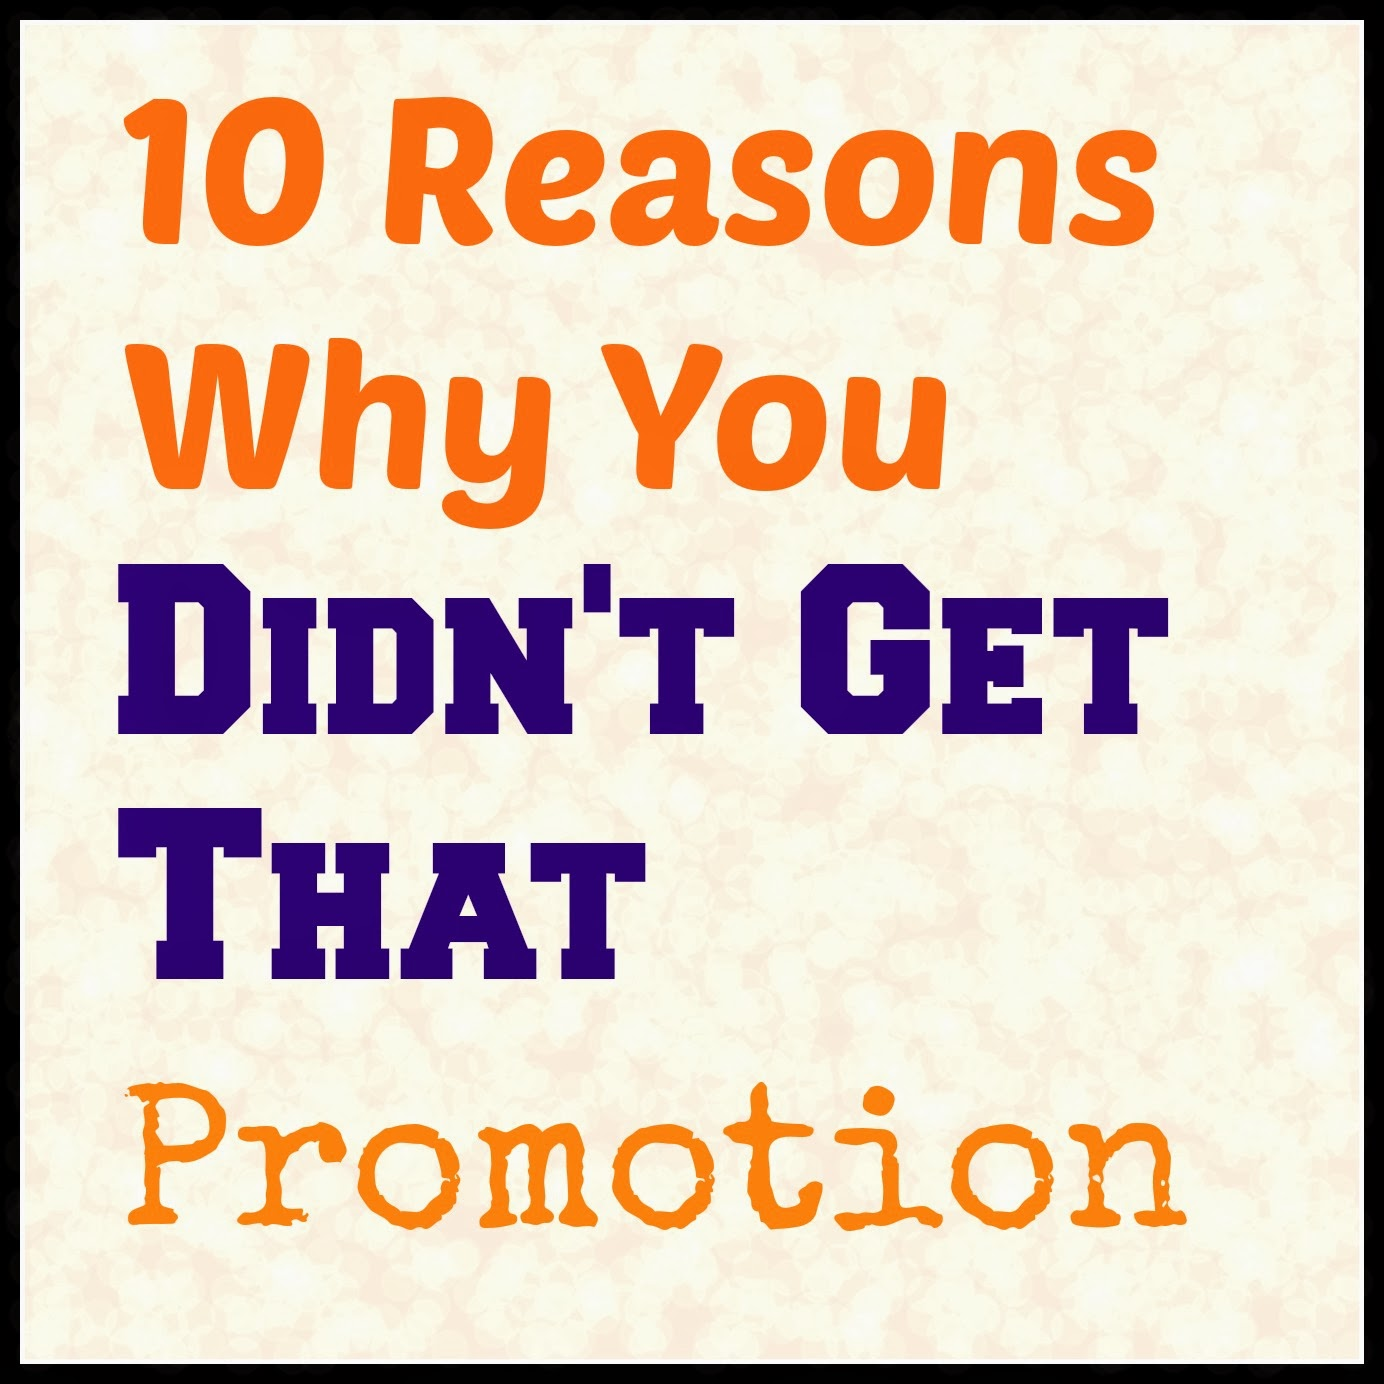 san diego hr mom 10 reasons why you didn t get that promotion 10 reasons why you didn t get that promotion